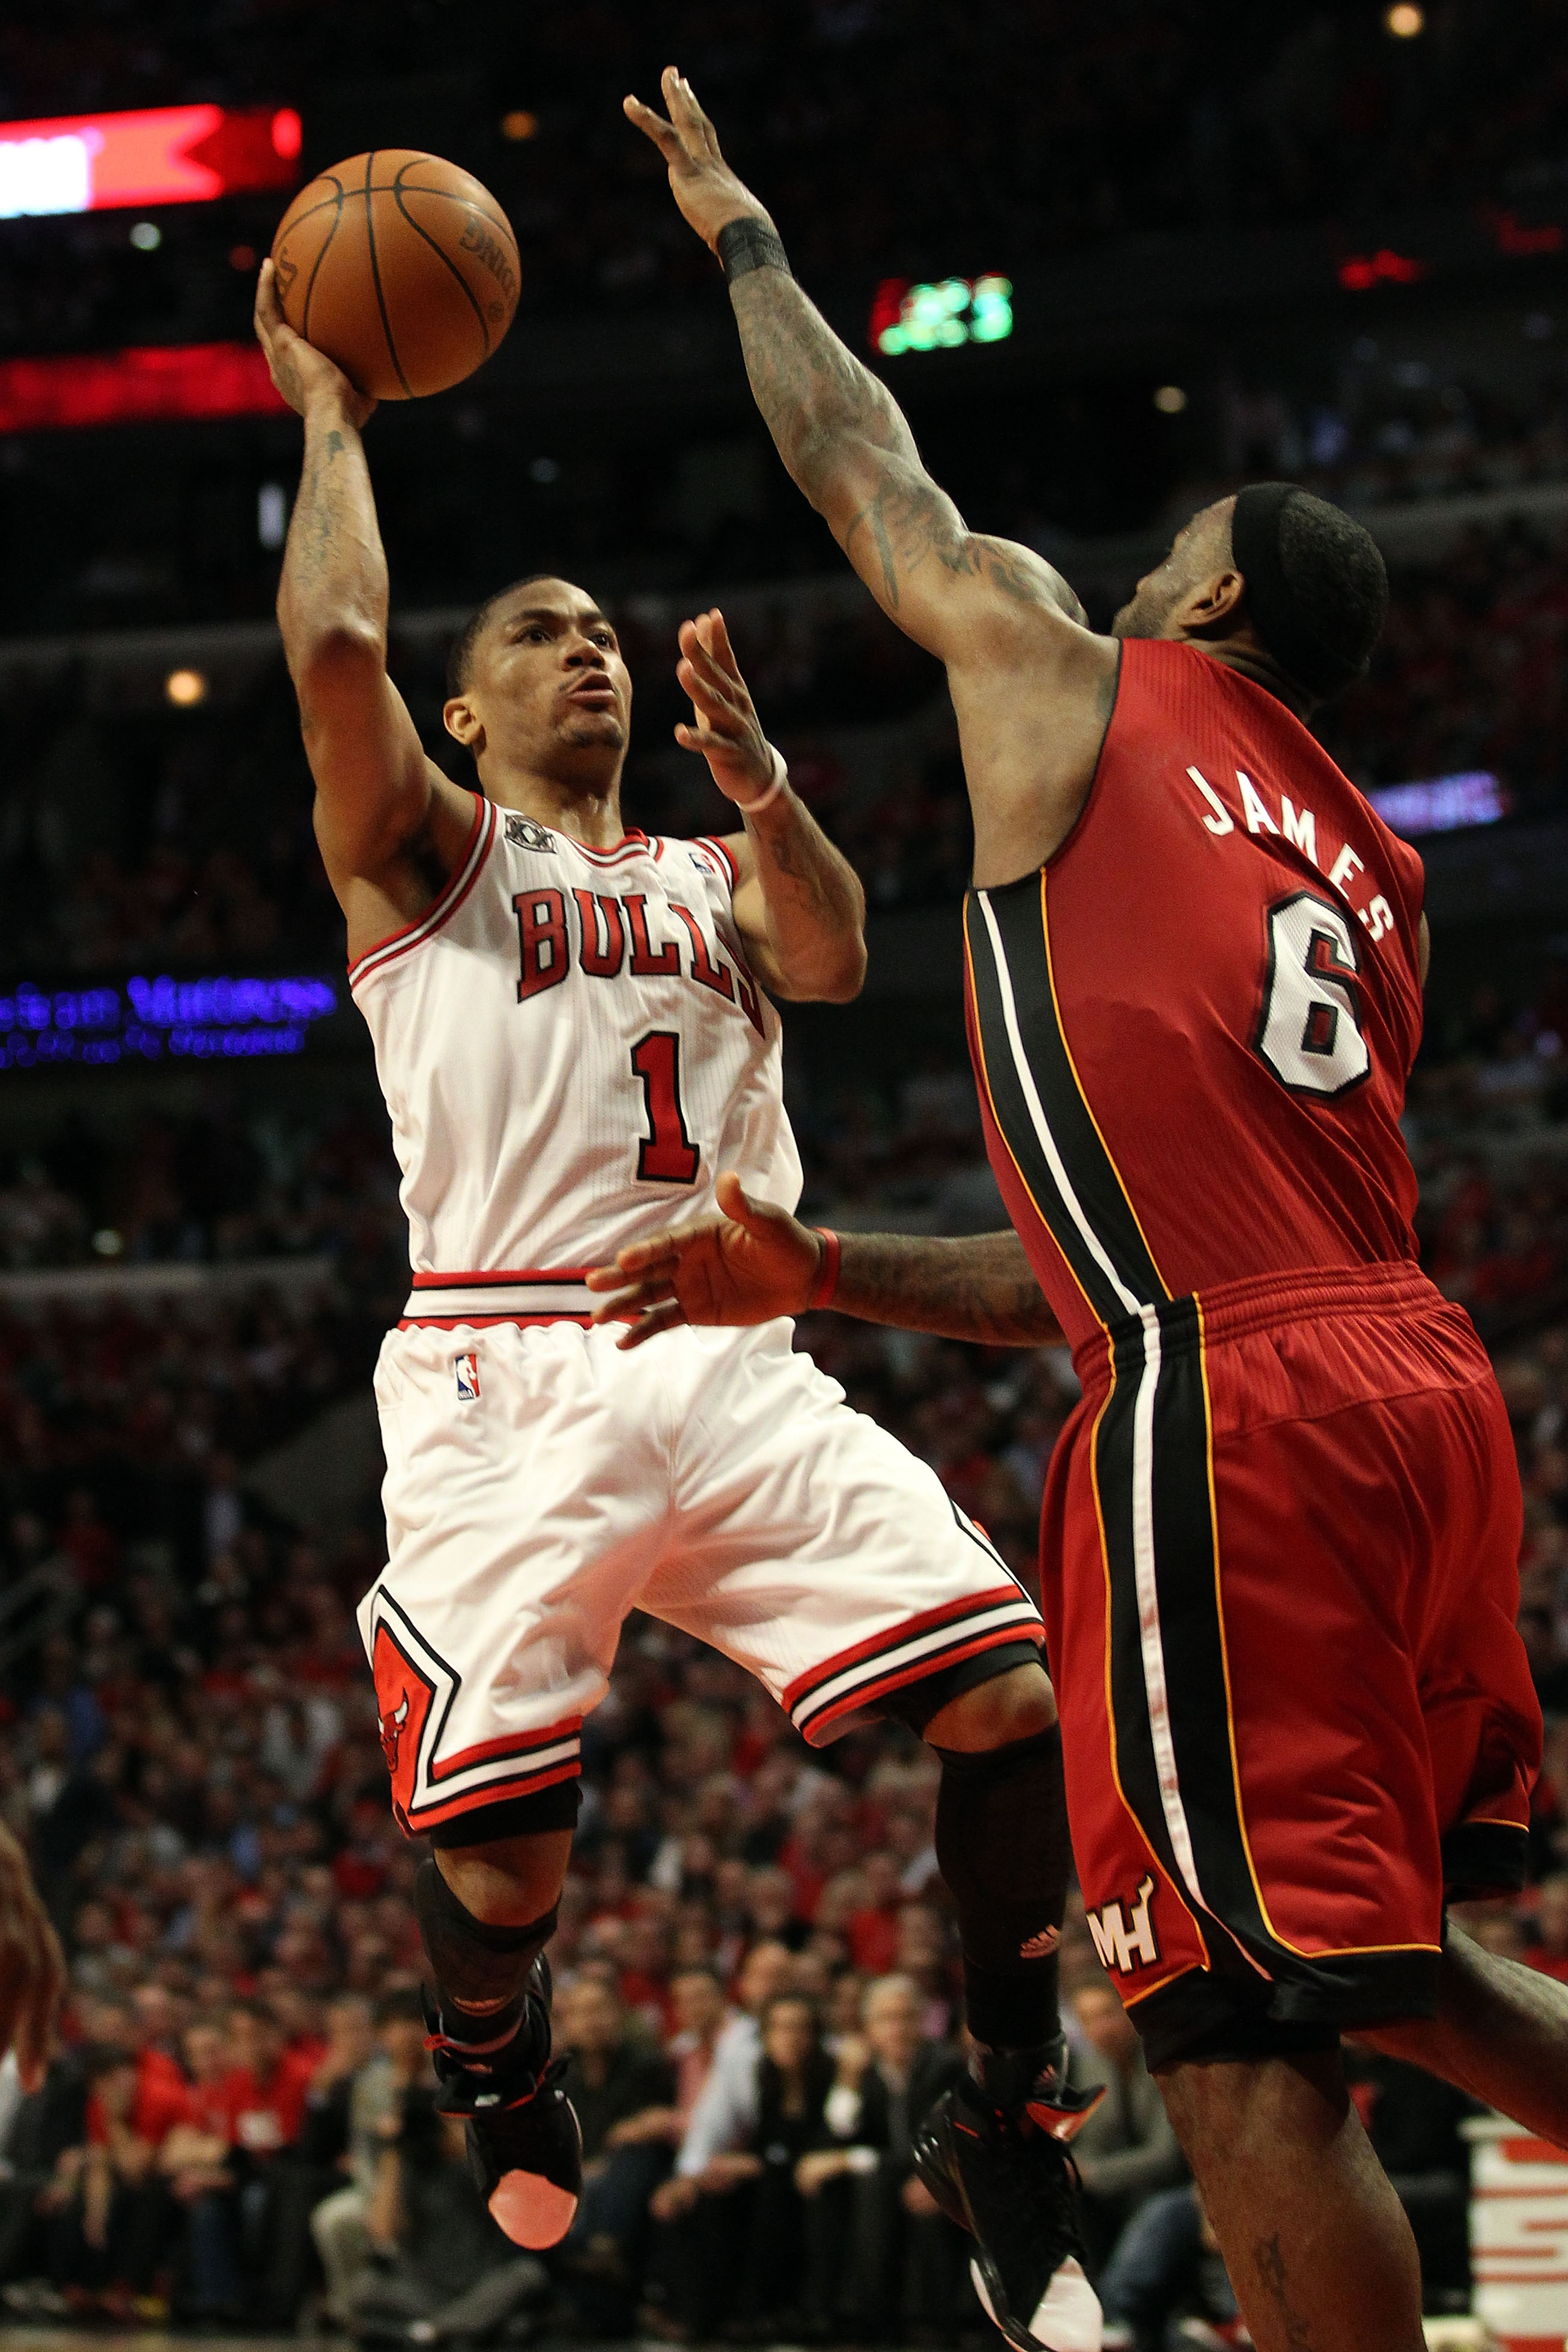 CHICAGO, IL - MAY 26:  Derrick Rose #1 of the Chicago Bulls drives for a shot attempt against LeBron James #6 of the Miami Heat in Game Five of the Eastern Conference Finals during the 2011 NBA Playoffs on May 26, 2011 at the United Center in Chicago, Ill